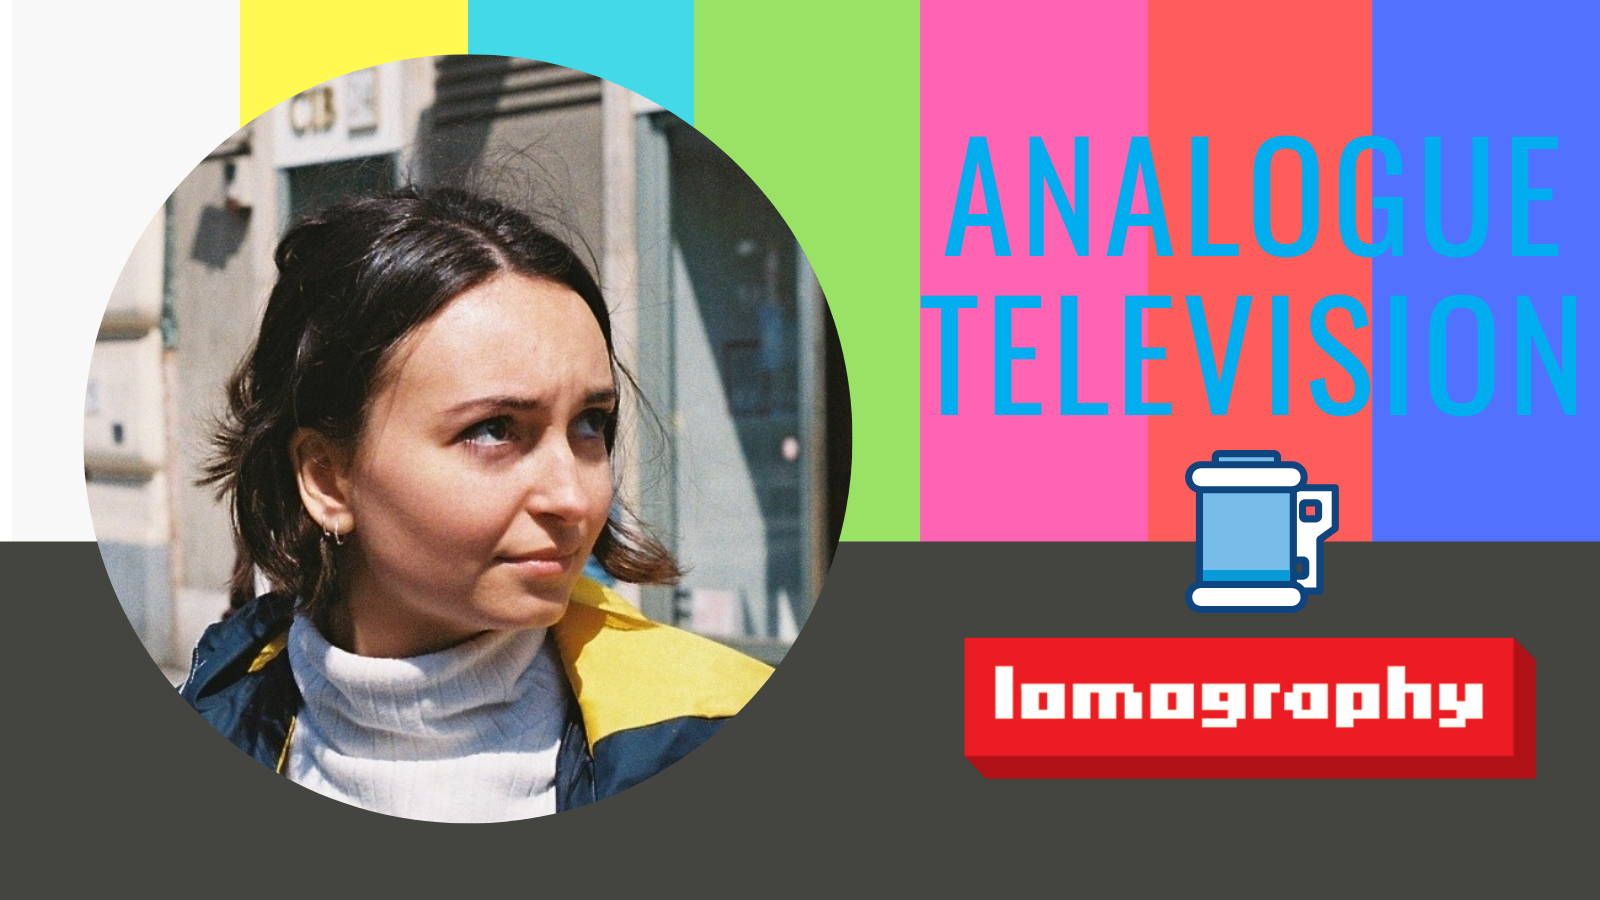 Analogue Television: The Lomography Interview